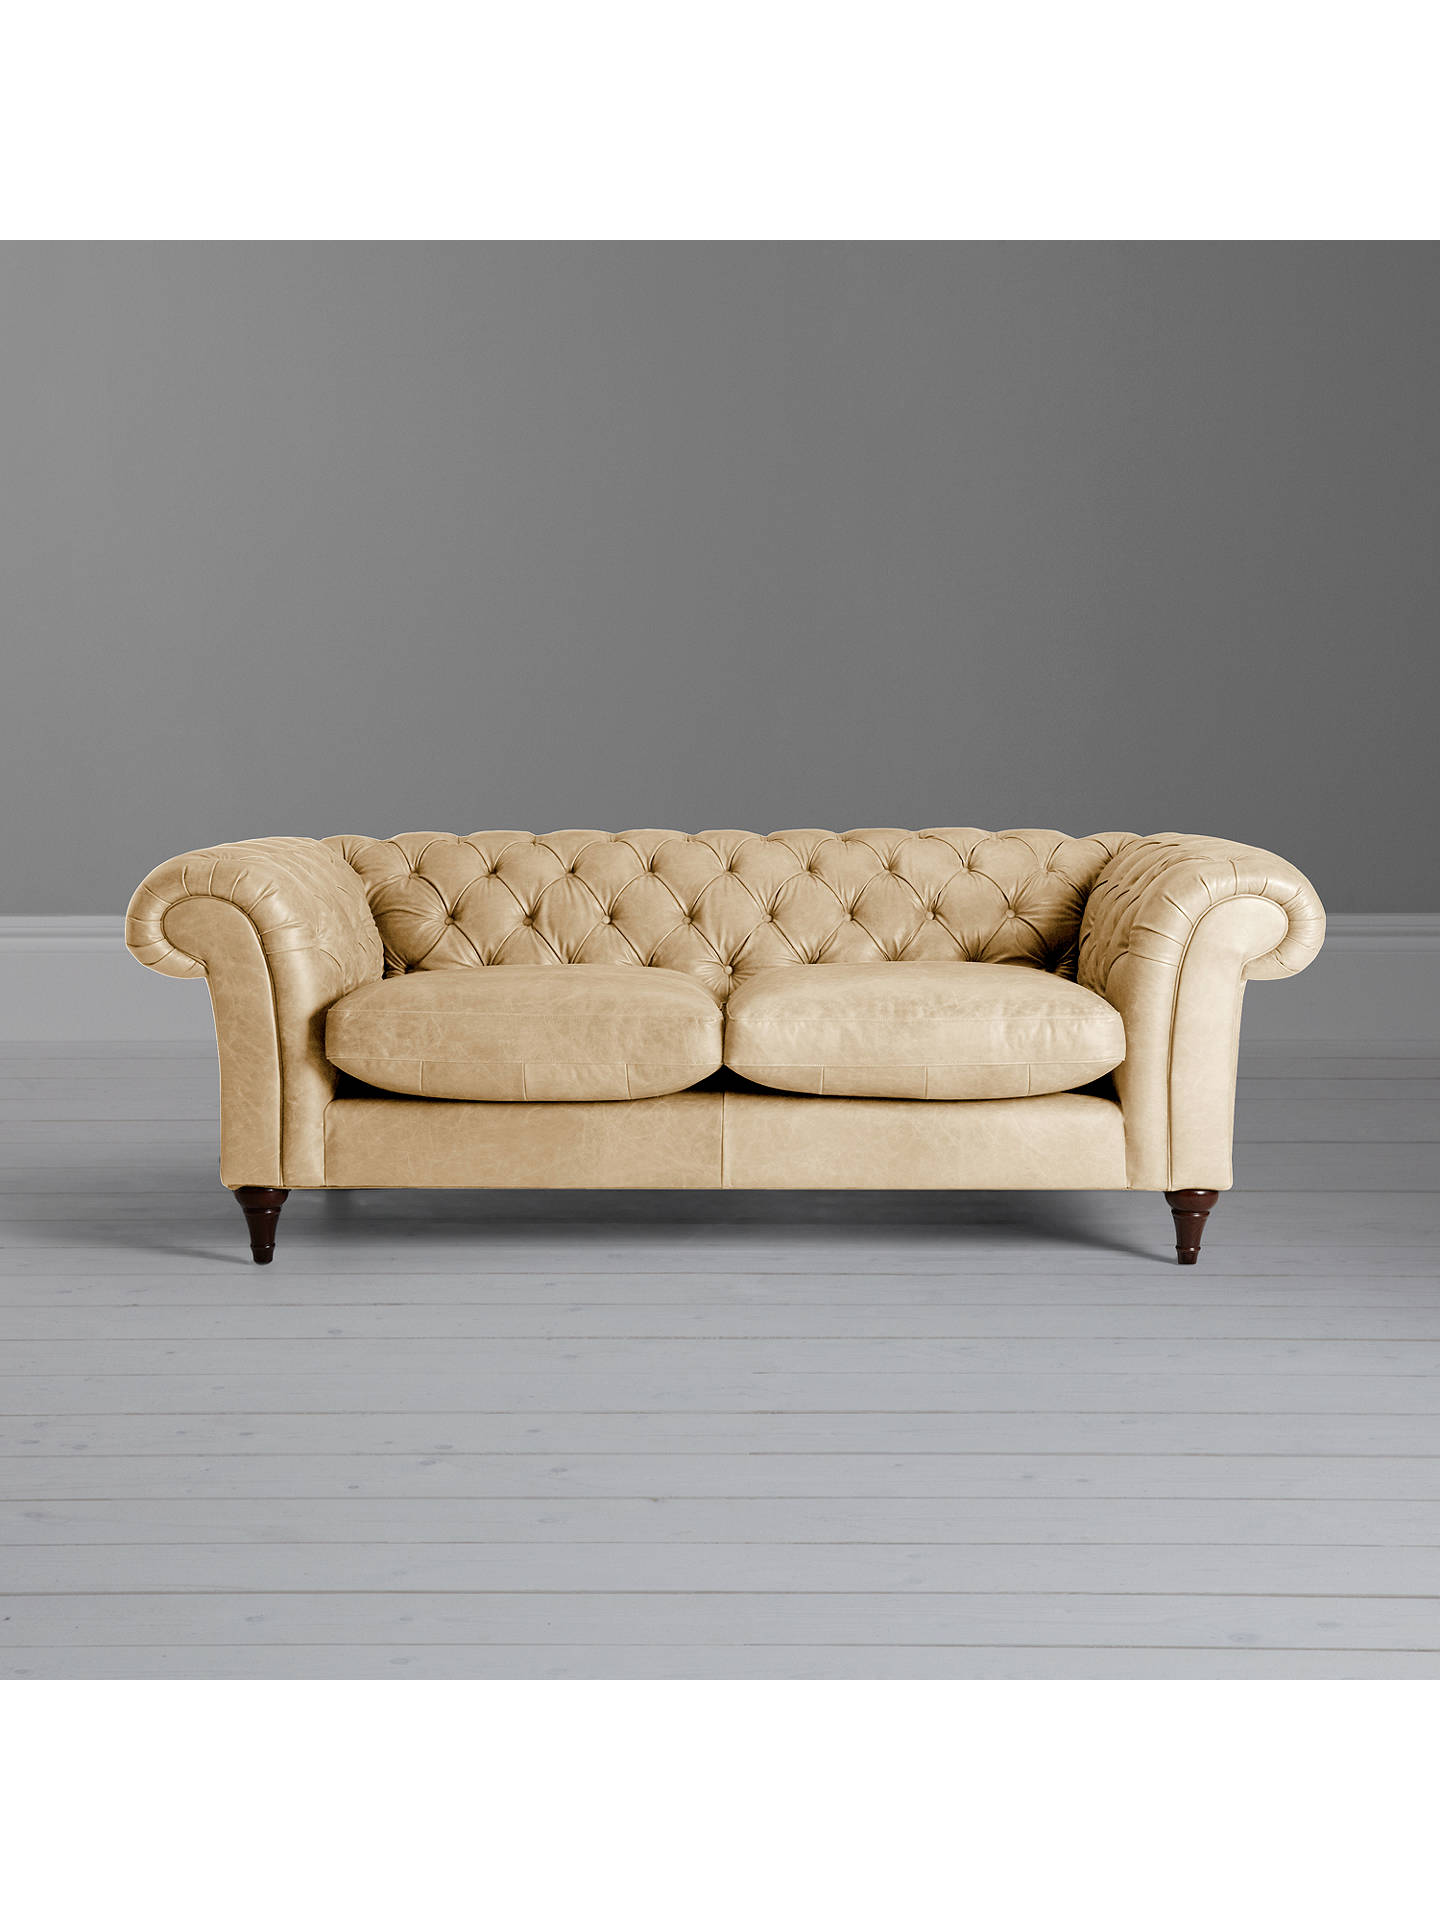 John Lewis & Partners Cromwell Chesterfield Leather Grand 4 Seater Sofa,  Dark Leg, Contempo Ivory